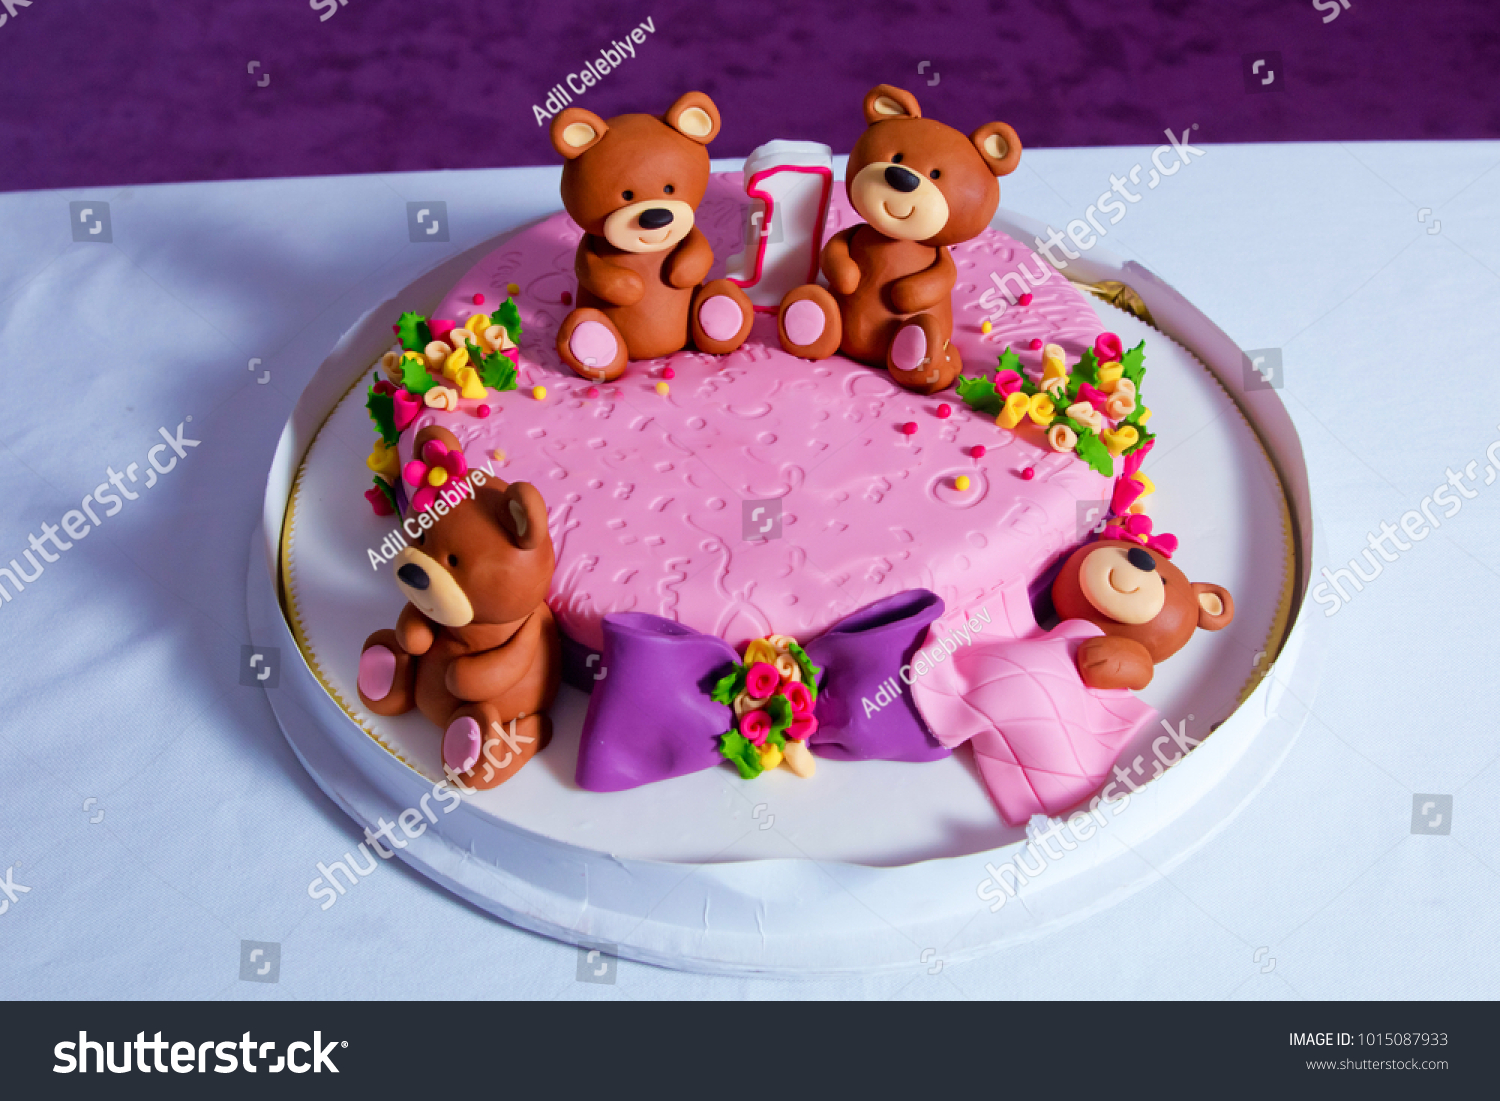 Terrific 1 Year Old Birthday Cake Big Stock Photo Edit Now 1015087933 Personalised Birthday Cards Cominlily Jamesorg